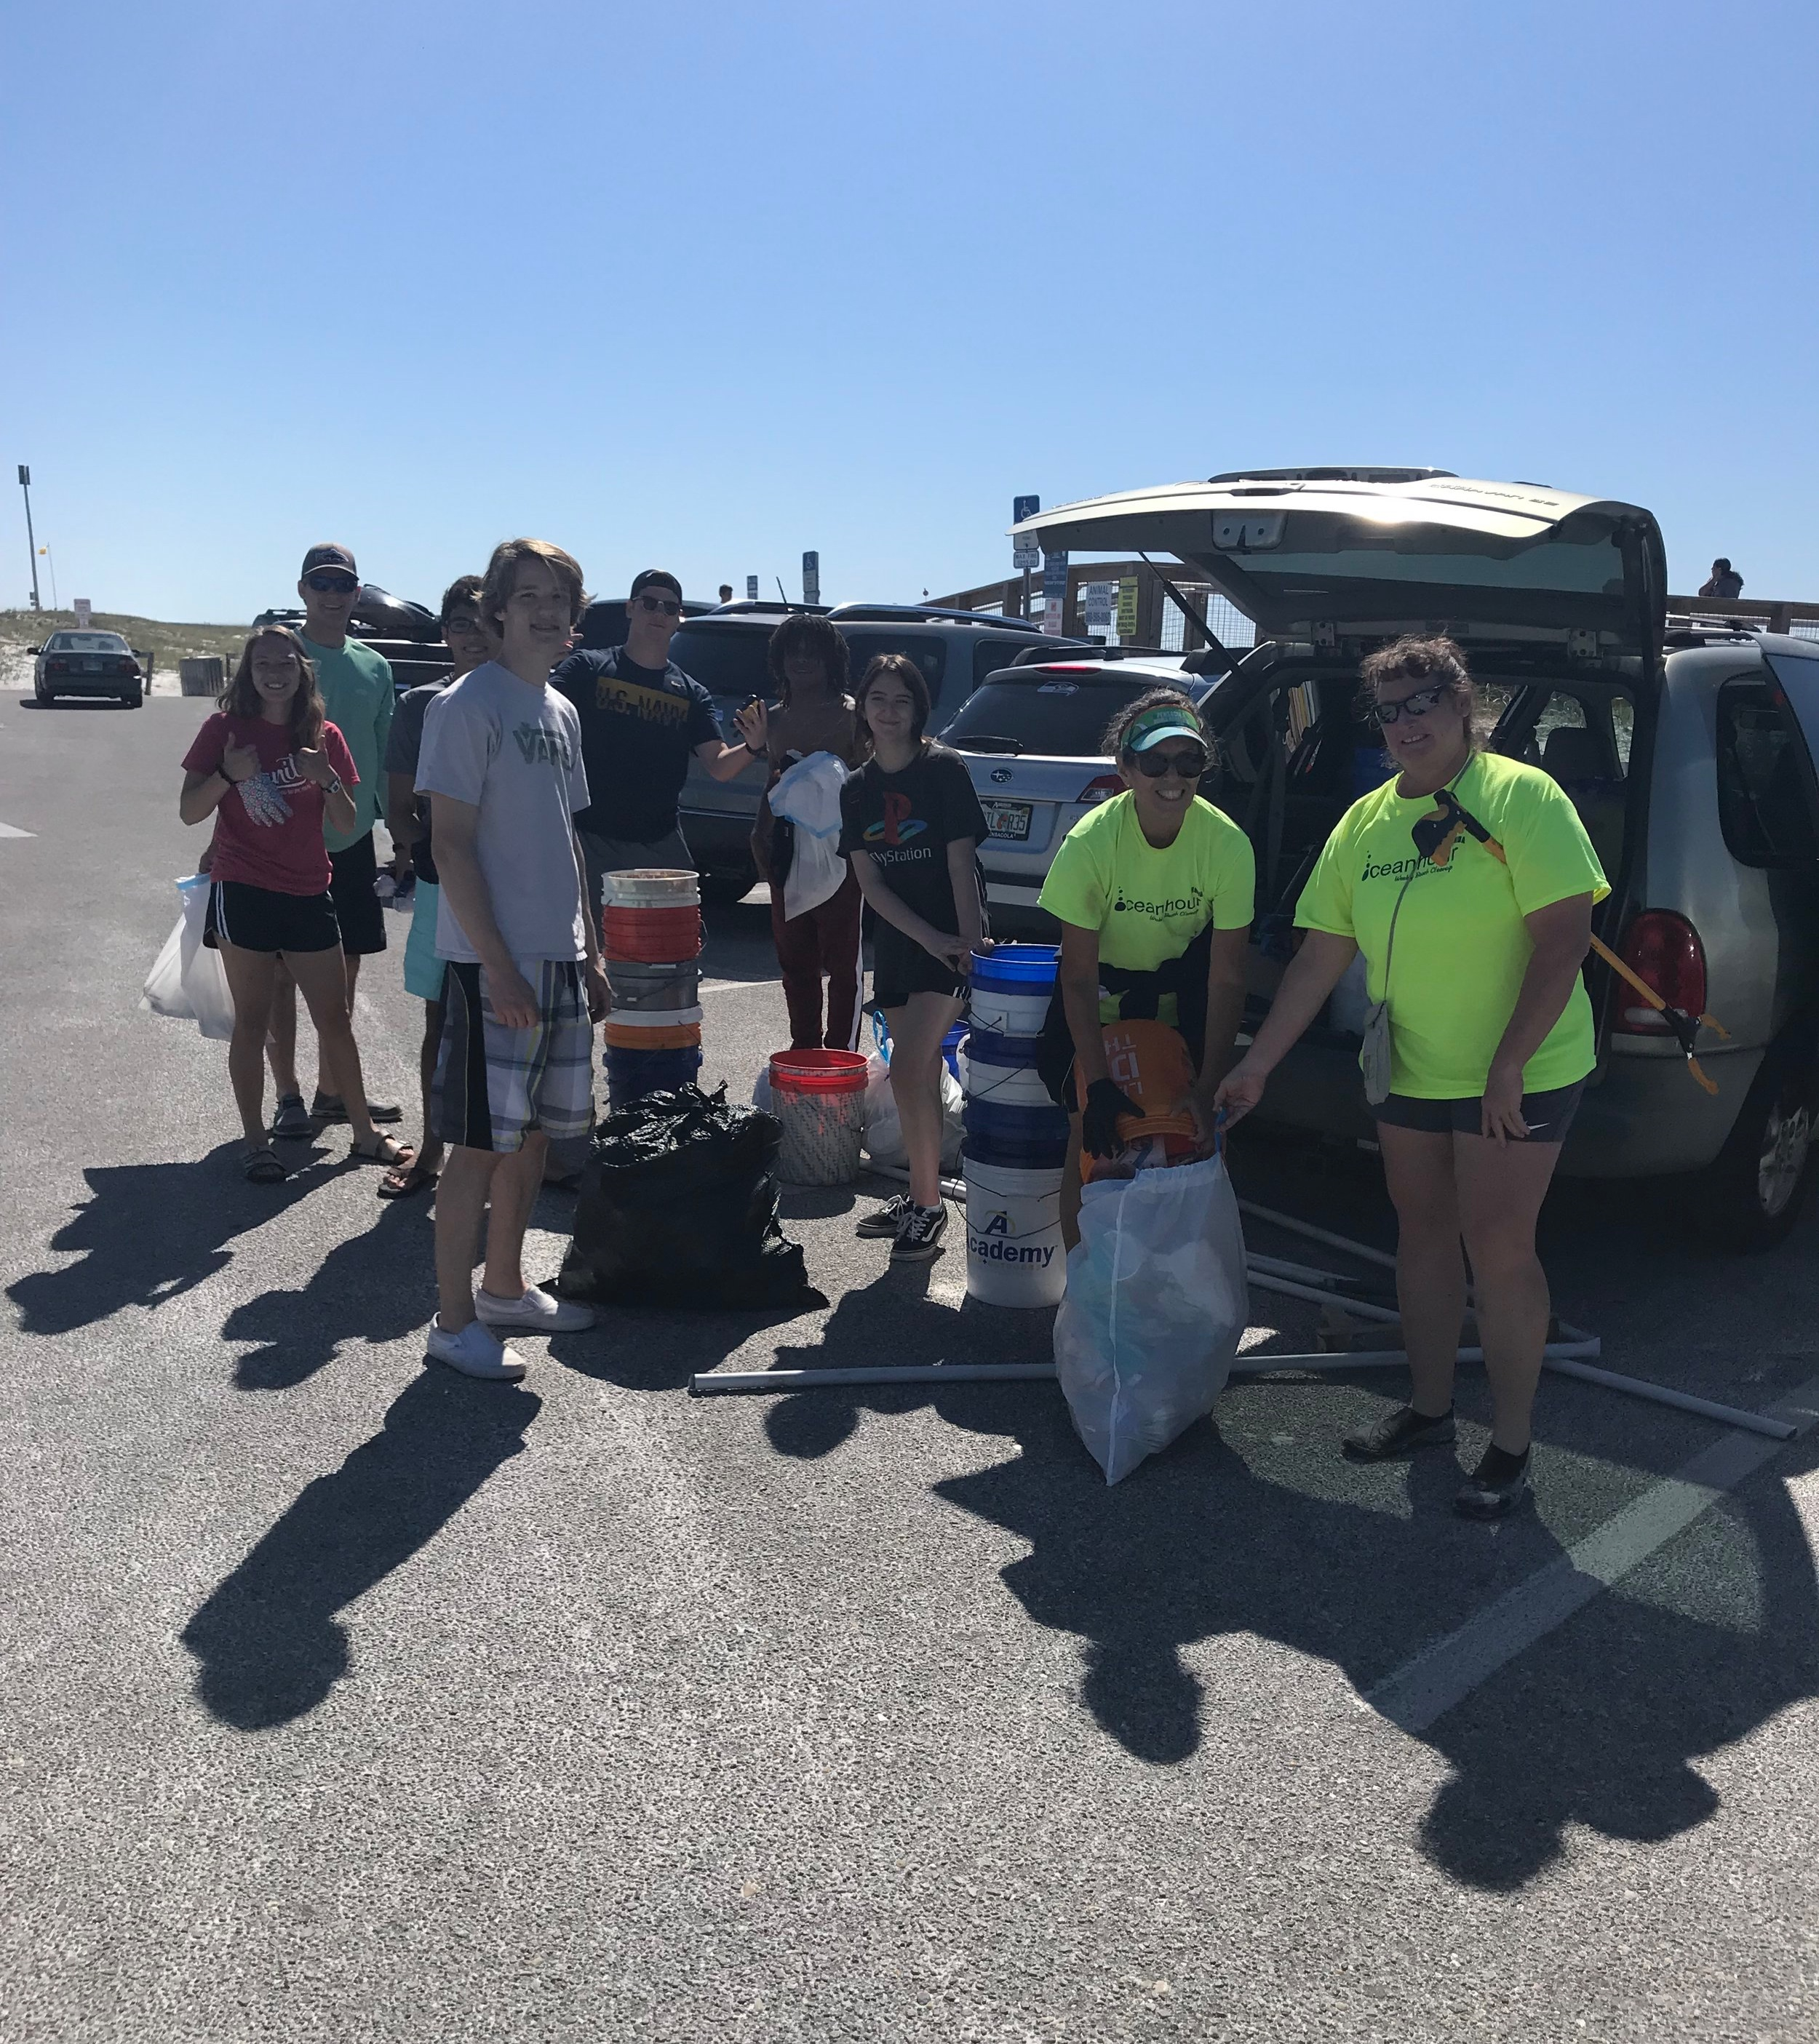 - the east end of Pensacola Beach. 53 volunteers picked up 313 lbs of trash at Park East and the Dog Park. Included a water heater!Brings the month's total to 1,857 lbs. So far this year each month's totals have been higher than 2018.